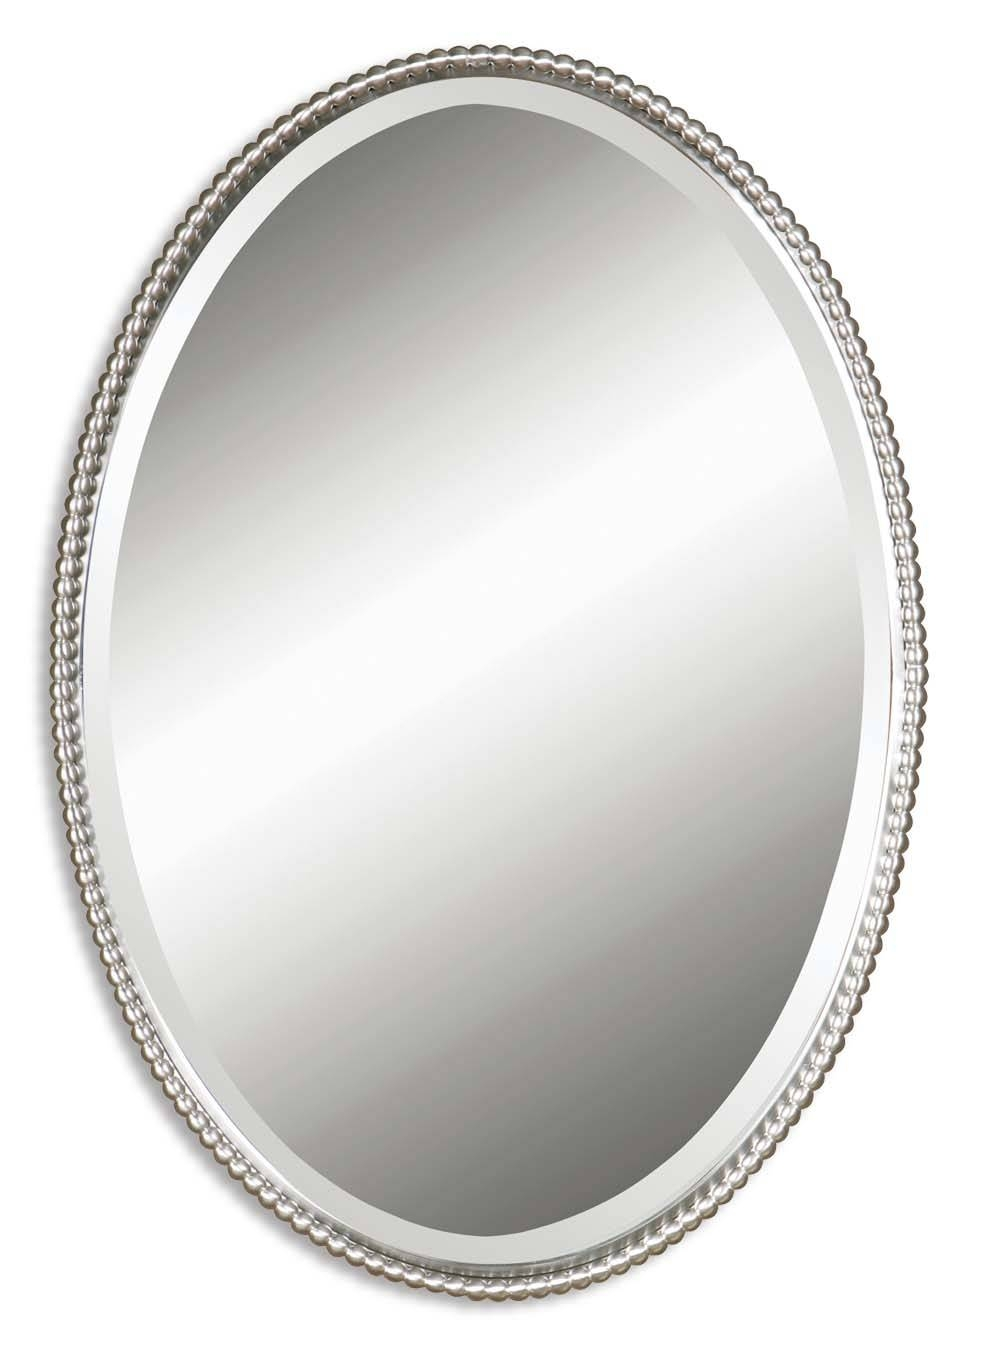 Ikea Kolja Mirror Oval | Carpetcleaningvirginia intended for Oval Silver Mirrors (Image 8 of 25)